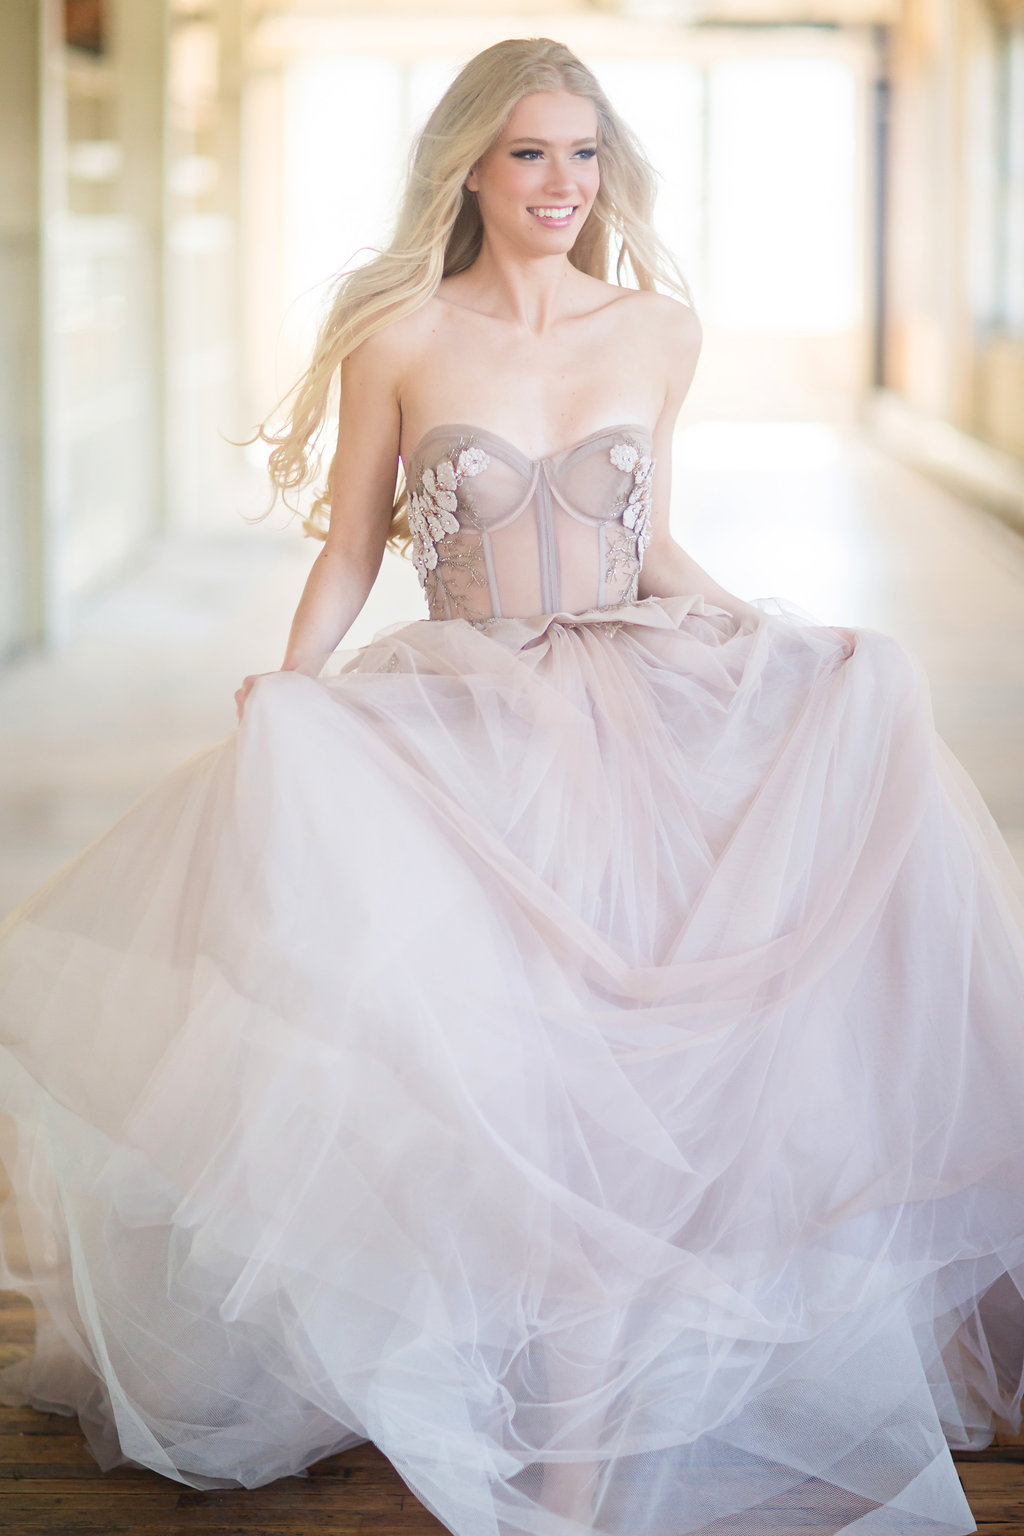 Photo by Cadence and Eli, Dress by Inbal Dror from L'atelier Coutrue, Hair by Julie Swenson, Makeup by Heather Trachsel, photos taken at The Machine Shop, Model is Lauren Schmidt